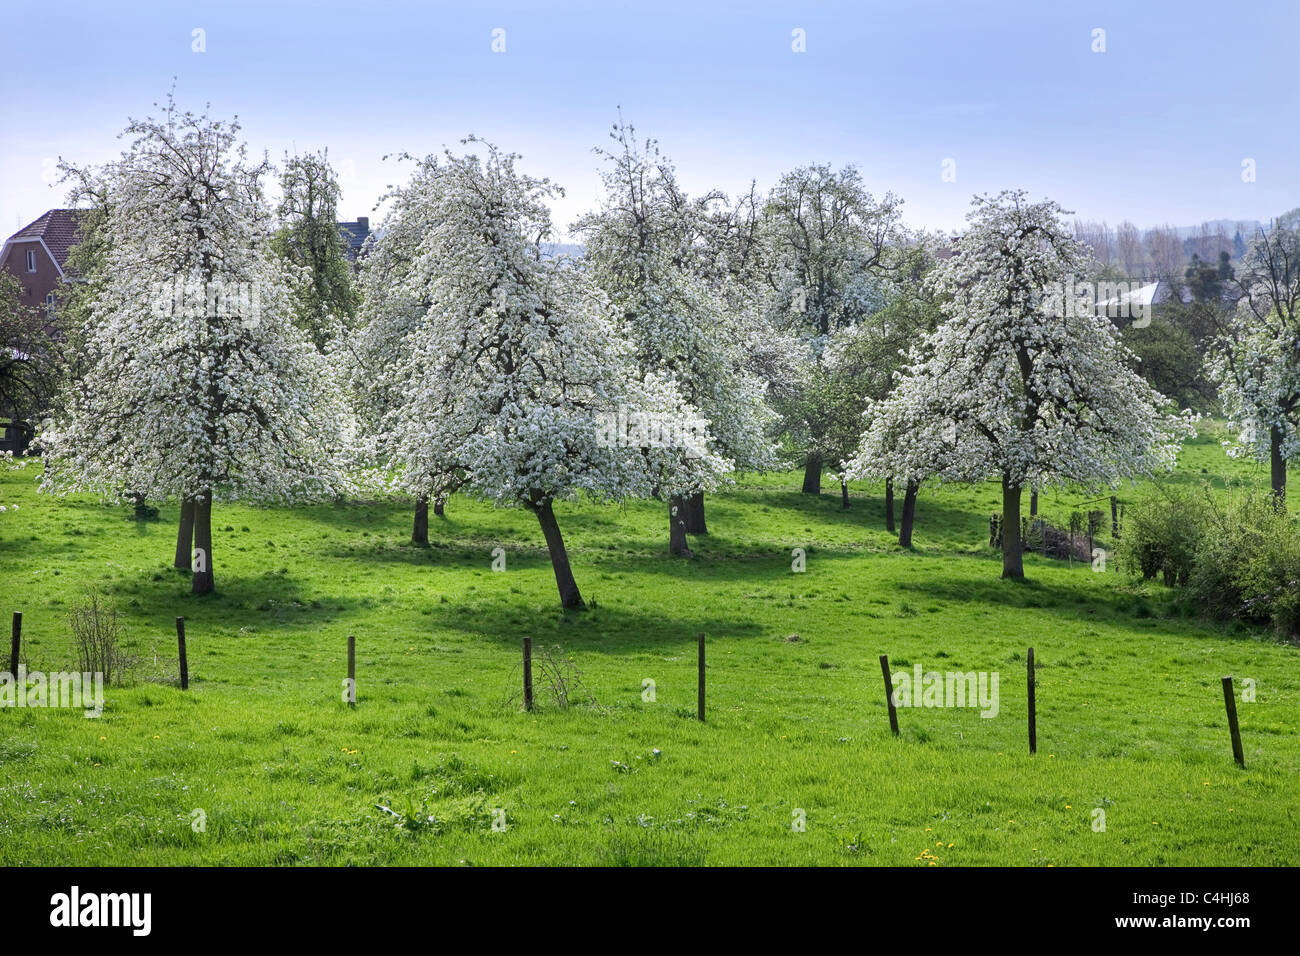 Orchard with pear trees (Pyrus) blossoming in spring, Hesbaye, Belgium - Stock Image